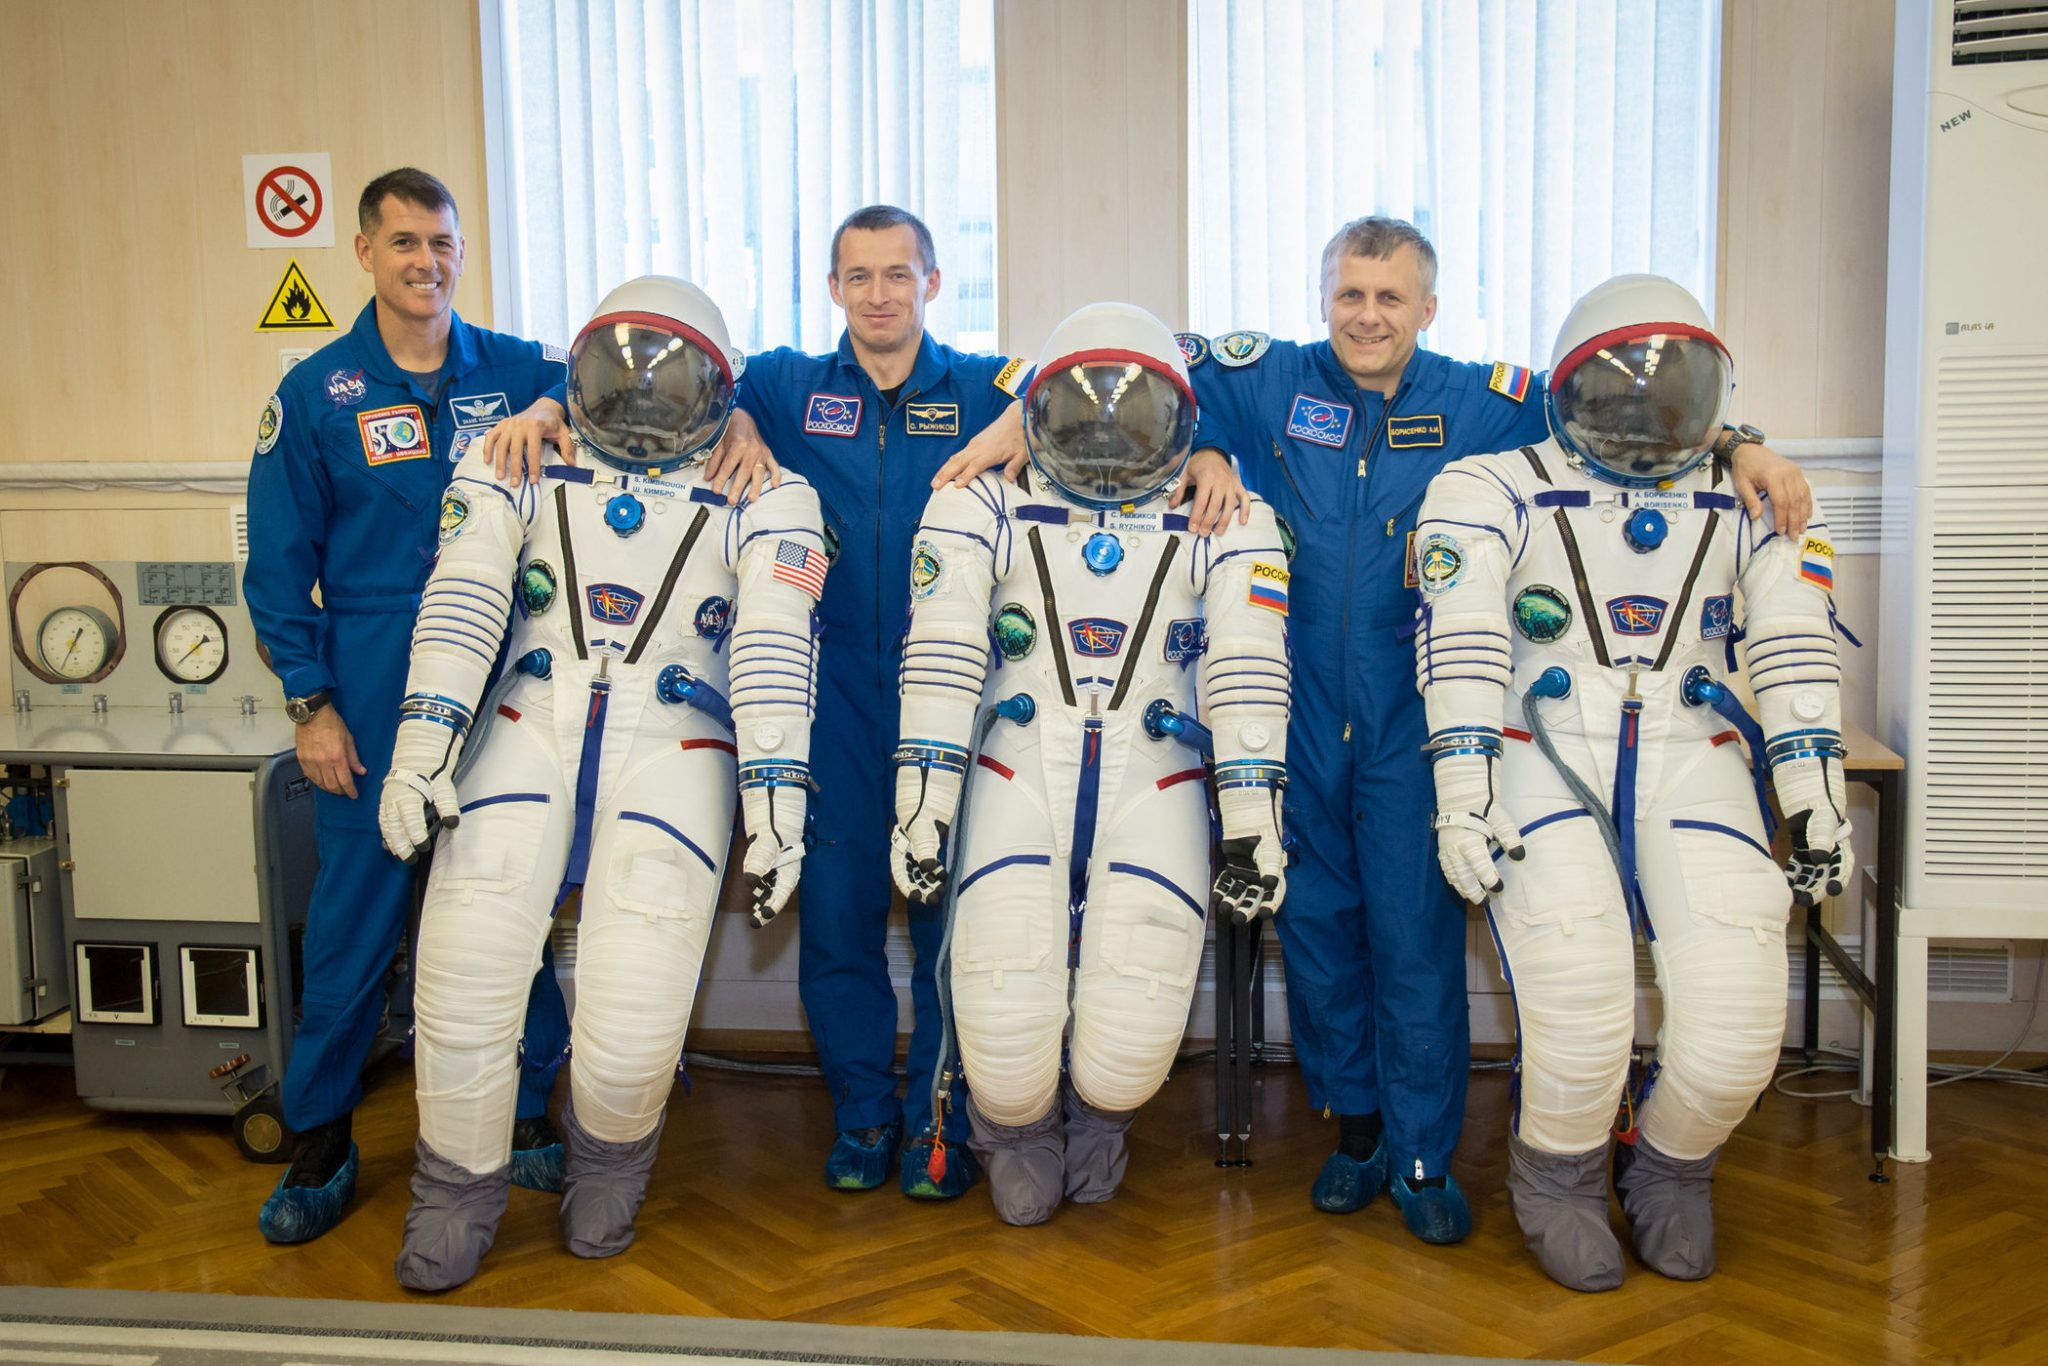 expedition-49-crew-and-suits